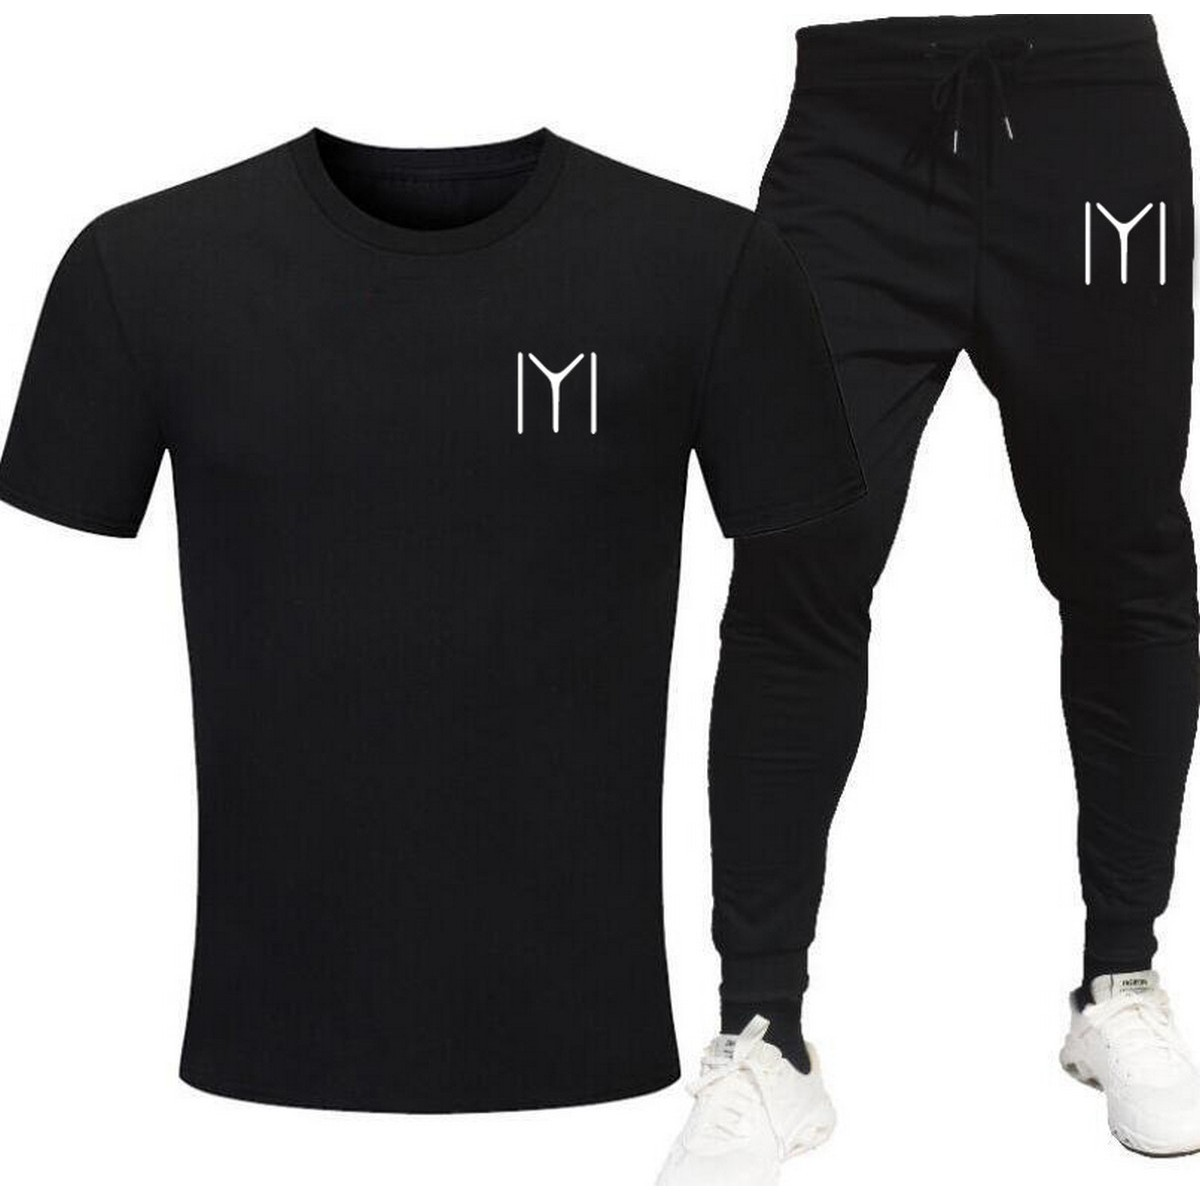 Kayi Tribe IYI Printed Tracksuit for mens Ertugrul Gazi cotton Jersey Round Neck Tshirts and Terry Trouser For Boys/Mans